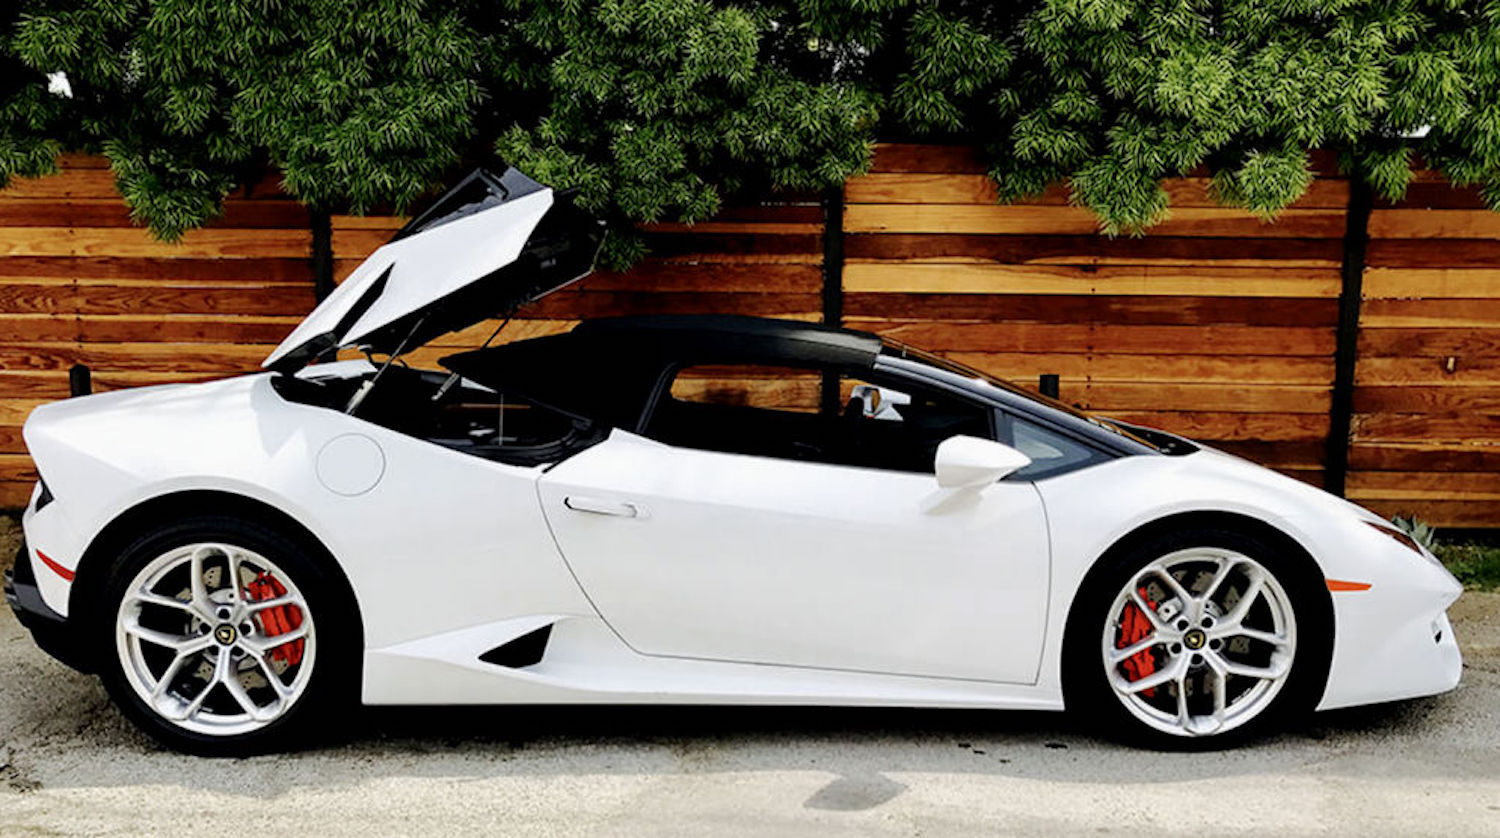 rent exotic Lamborghini Car From Exotic-Luxury-rental.com